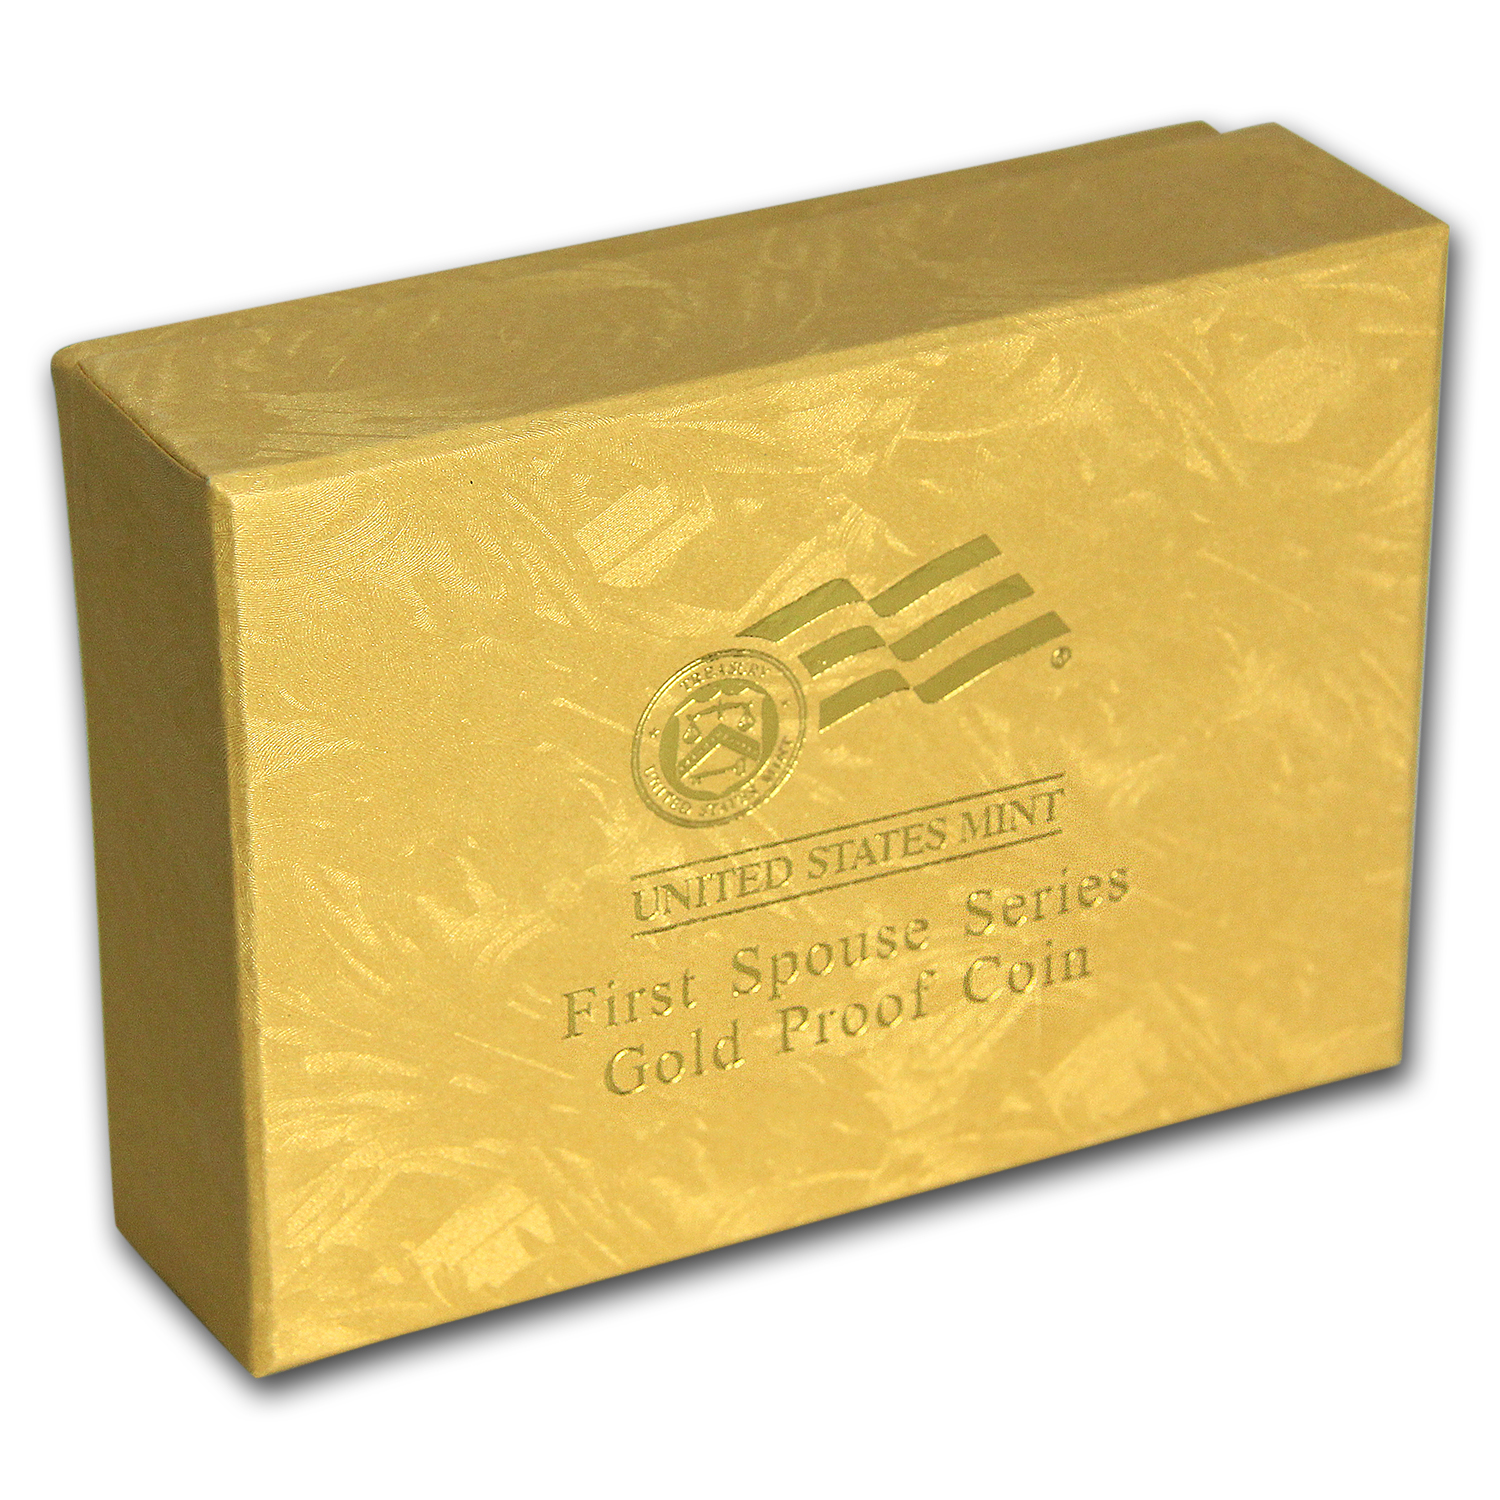 U.S. Mint First Spouse 1/2 oz Gold Proof Box - Yellow (2007-2012)